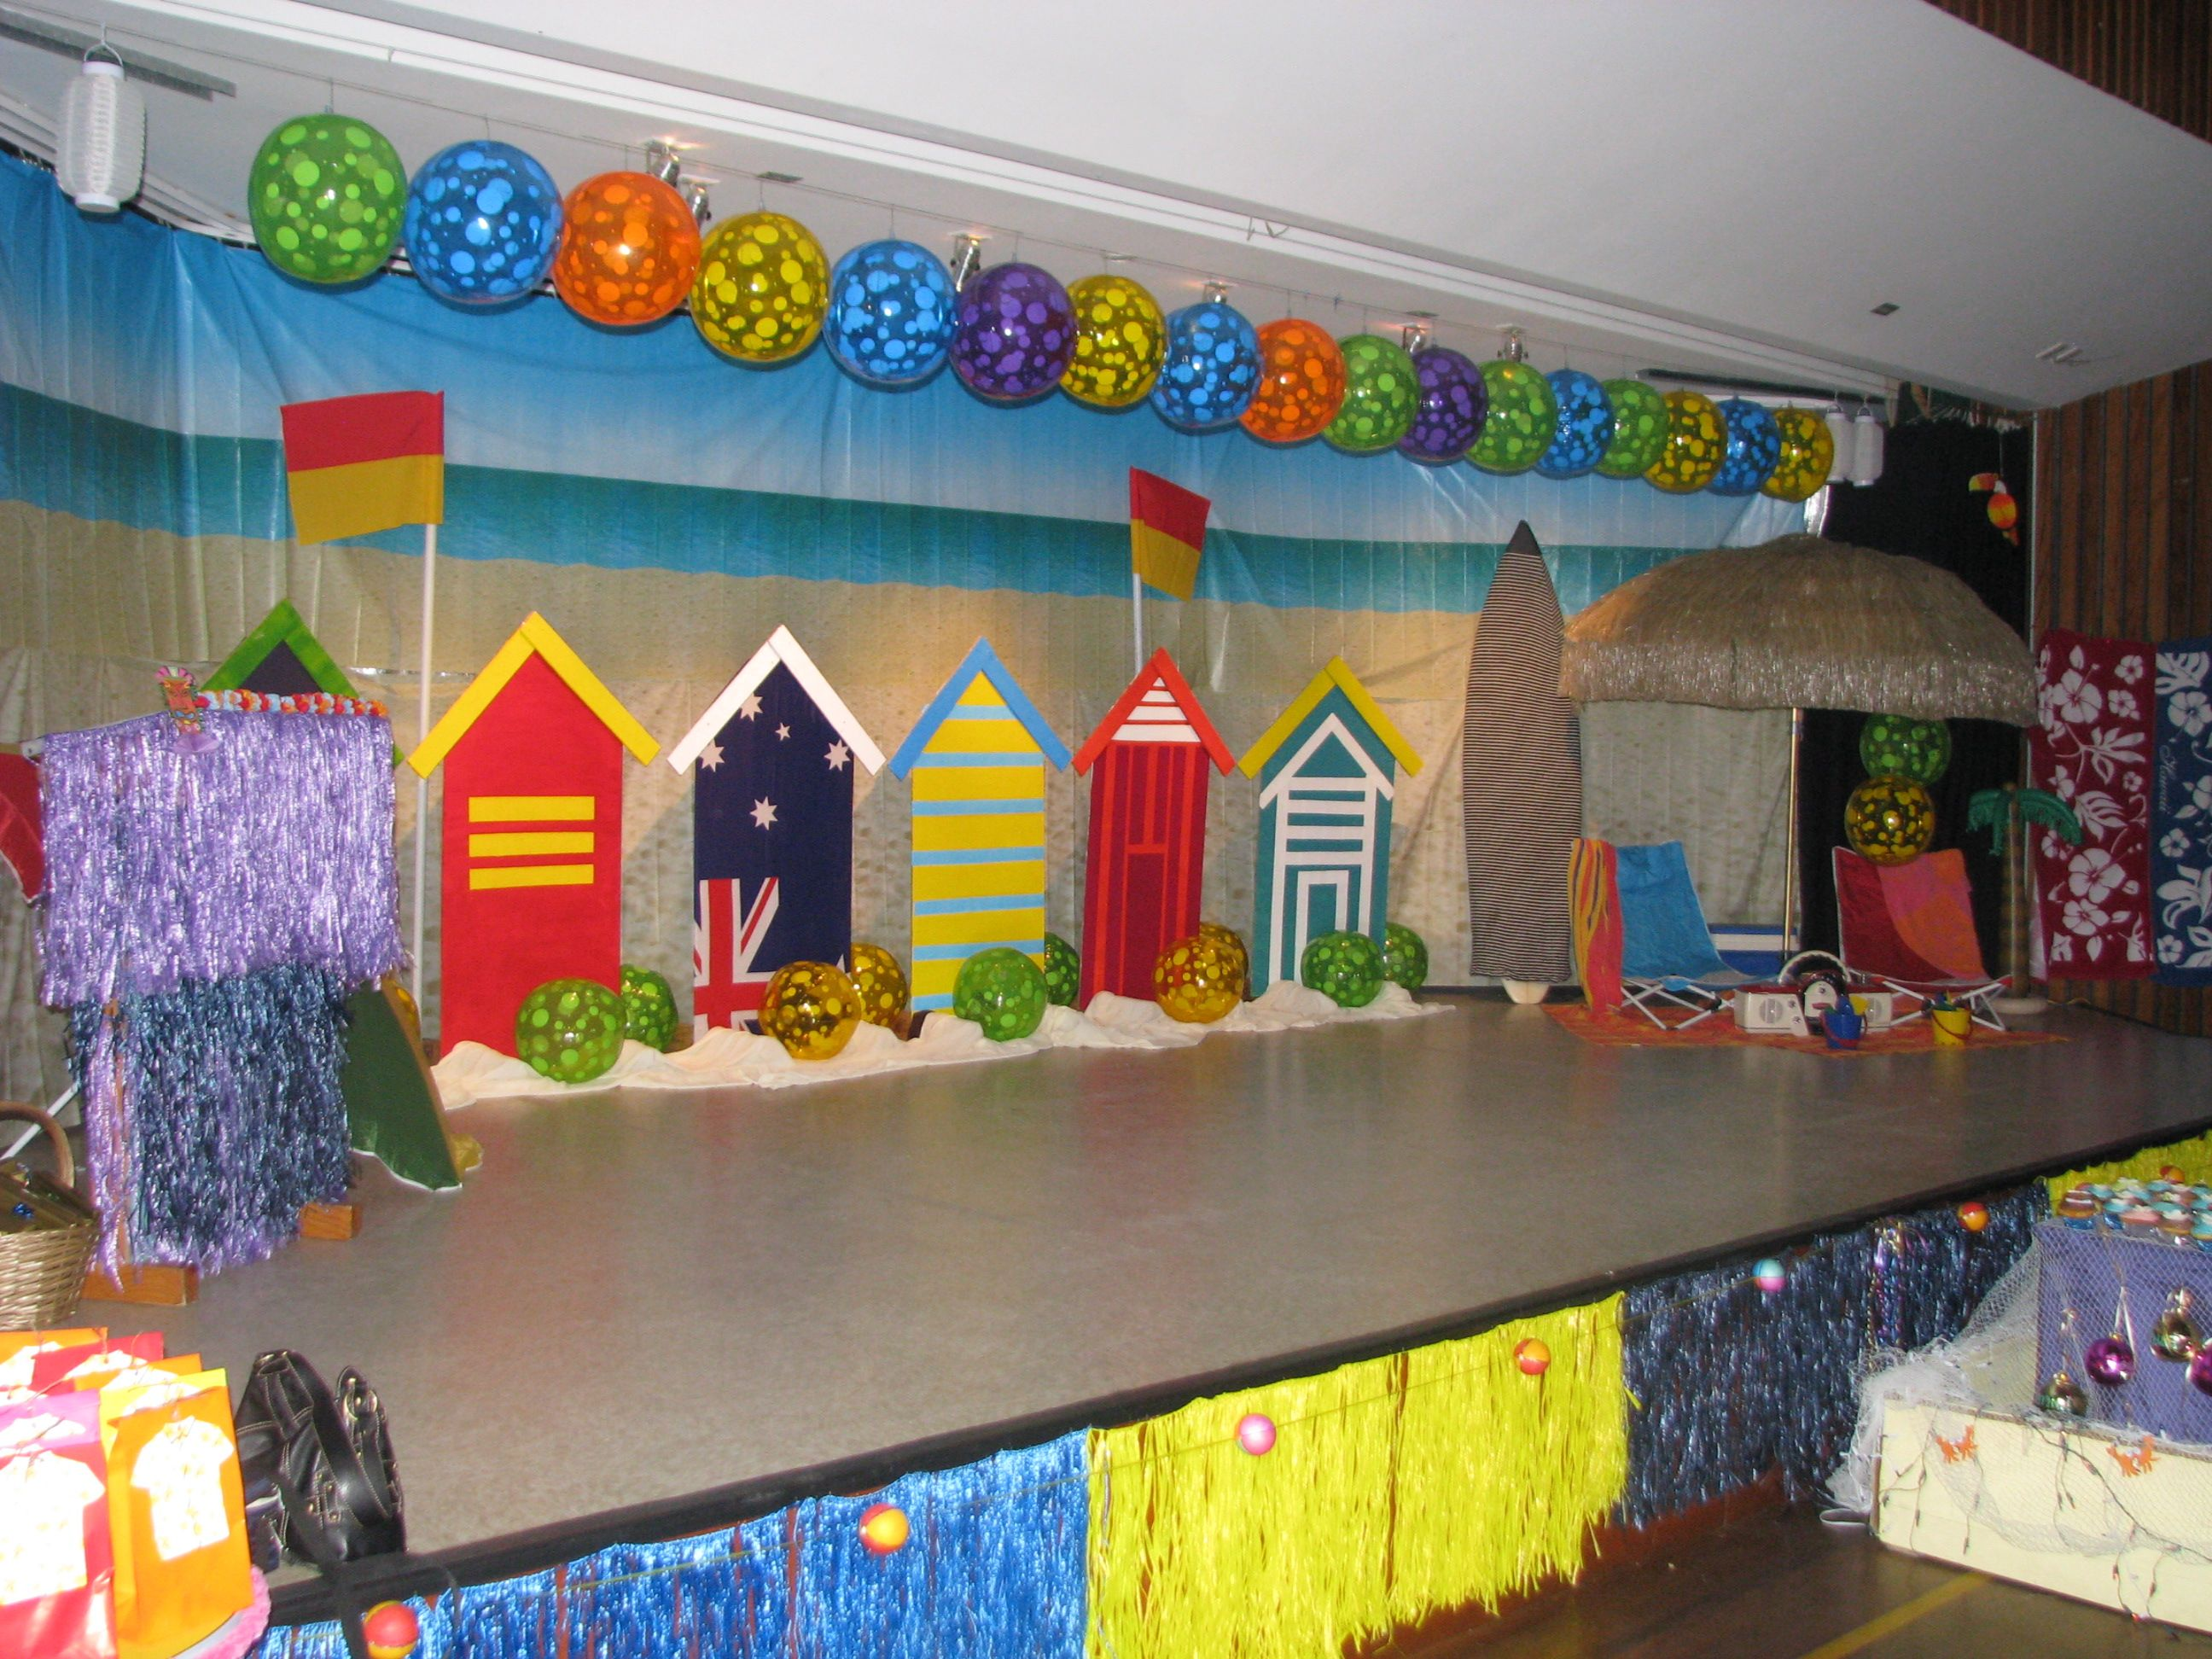 Pin By Meredith Galo On Year 6 Farewell Ideas Kindergarten Graduation Decorations Graduation Decorations Kindergarten Graduation